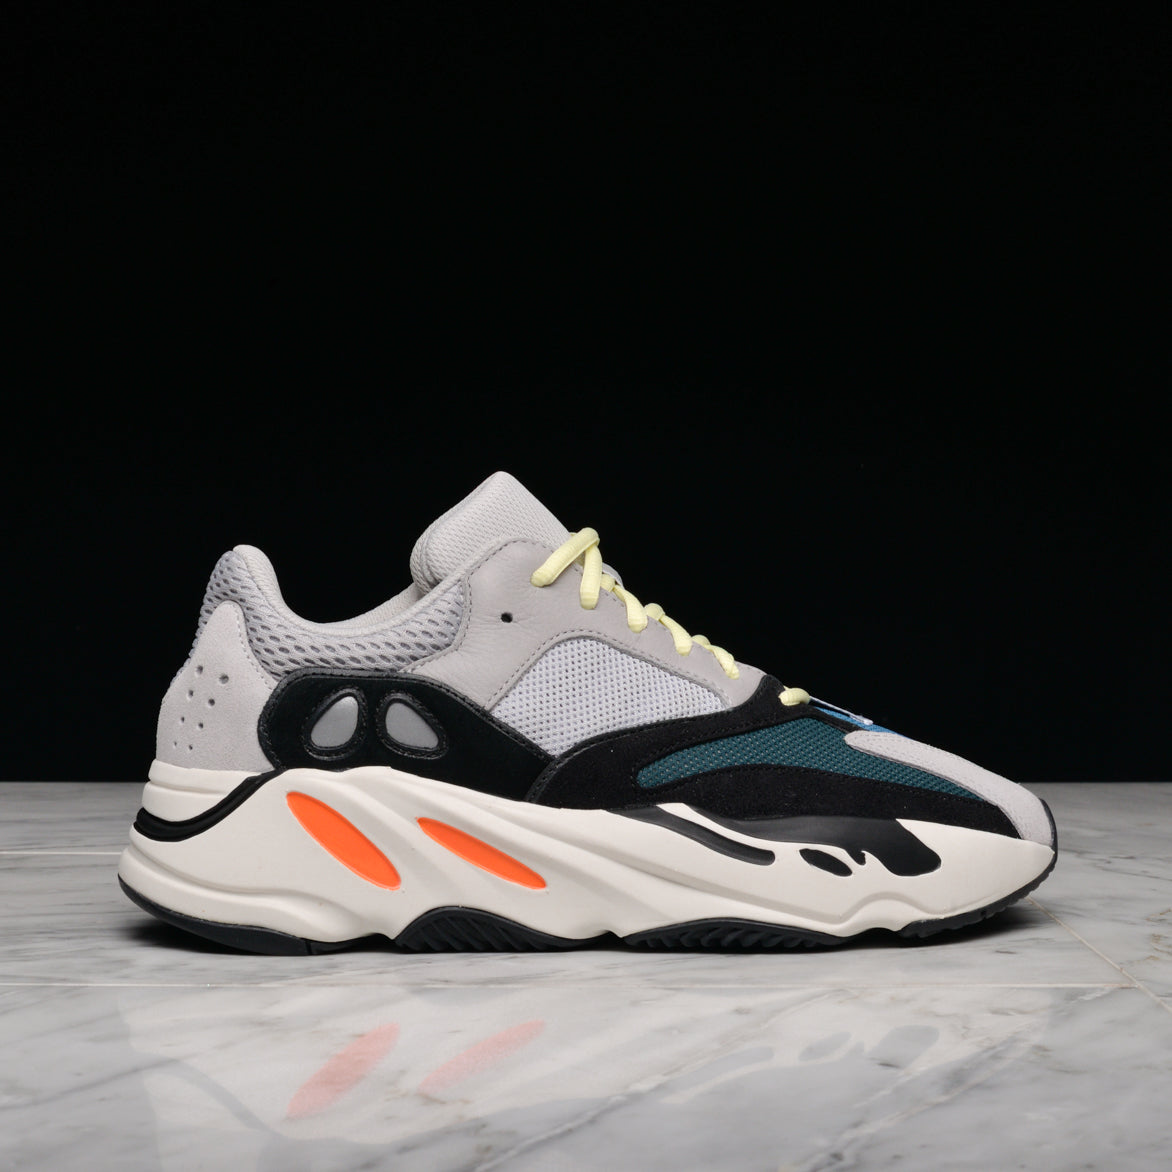 YEEZY BOOST 700 - MULTI SOLID GREY / CHALK WHITE / CORE BLACK